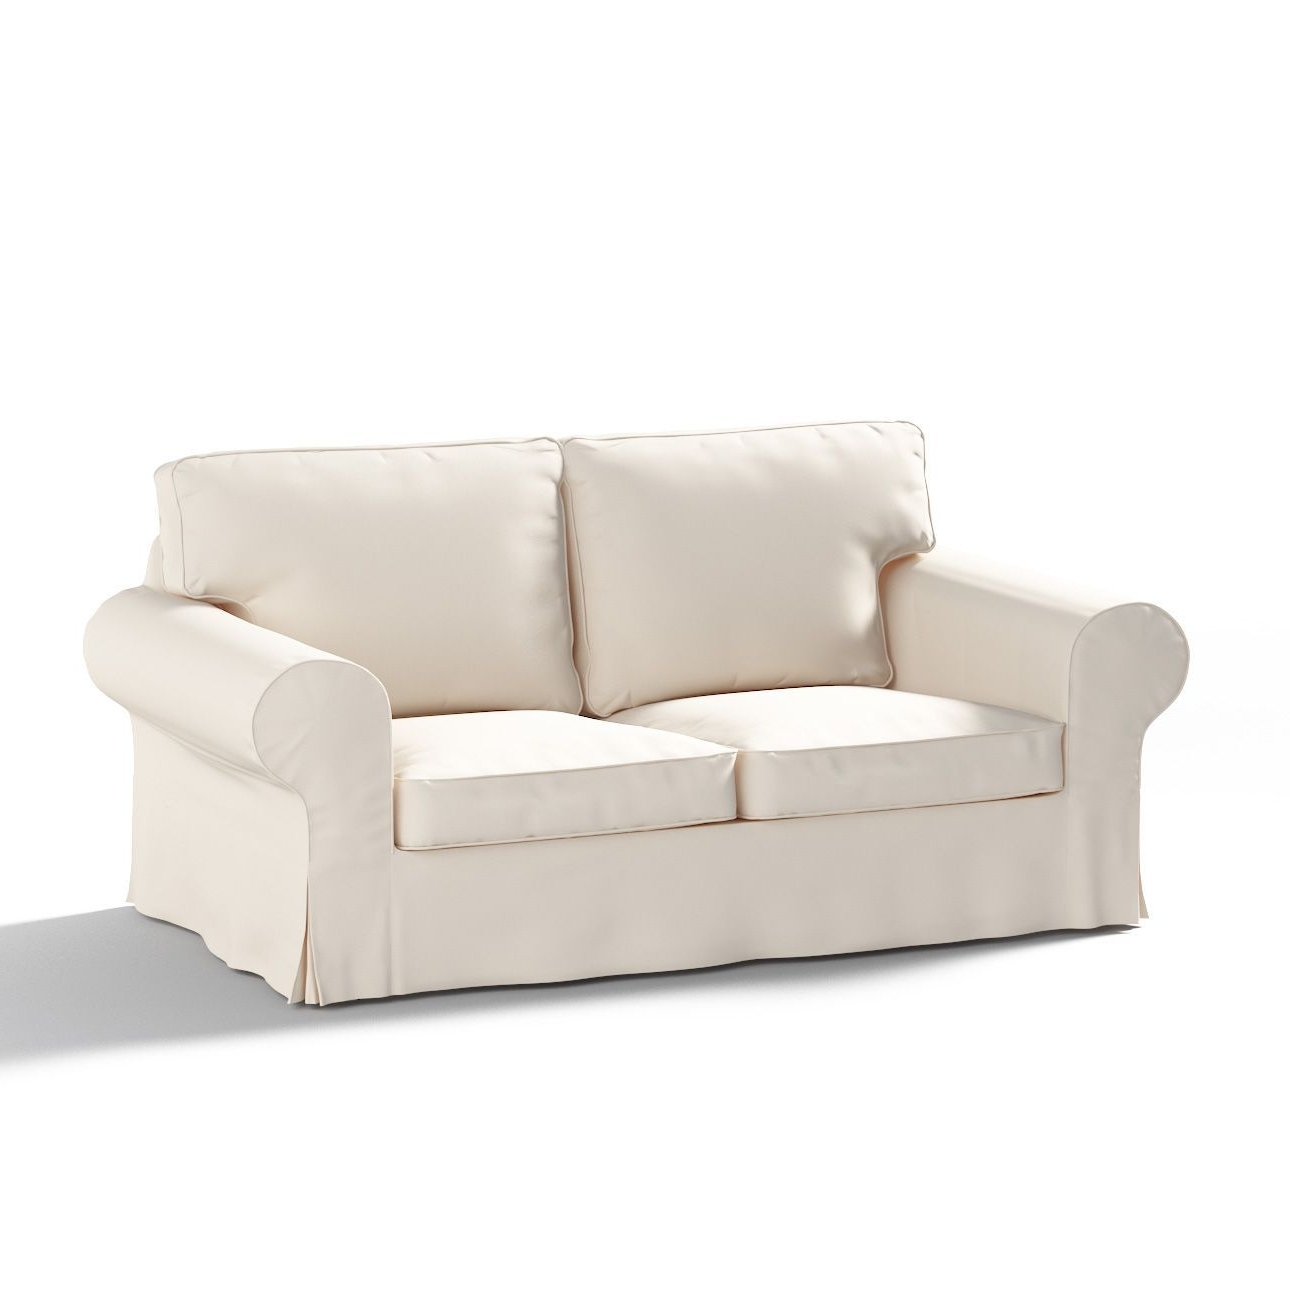 Sofas With Washable Covers In Most Popular Home Reserve Sectional Review Sofas With Removable Washable Covers (View 11 of 15)